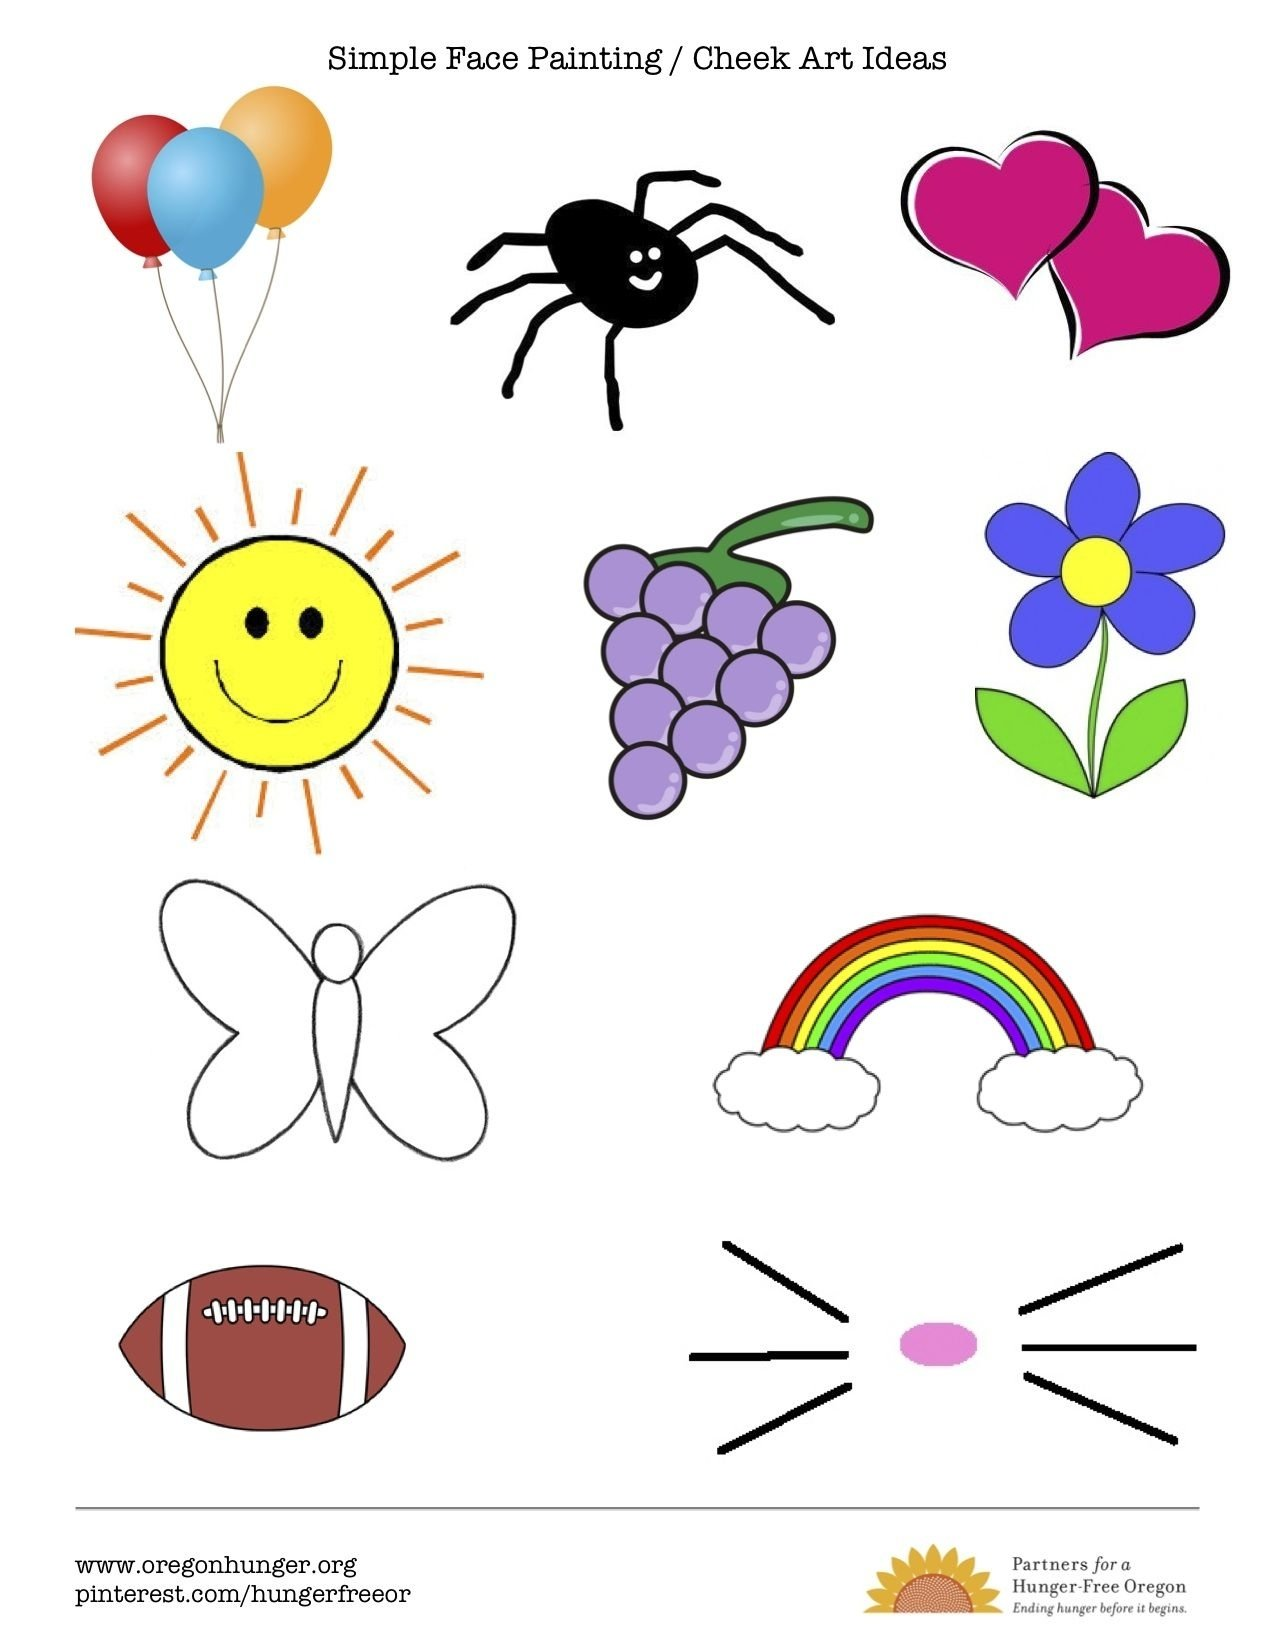 10 Fabulous Easy Face Painting Ideas For Kids Cheeks simple quick and easy face painting and cheek art ideas options